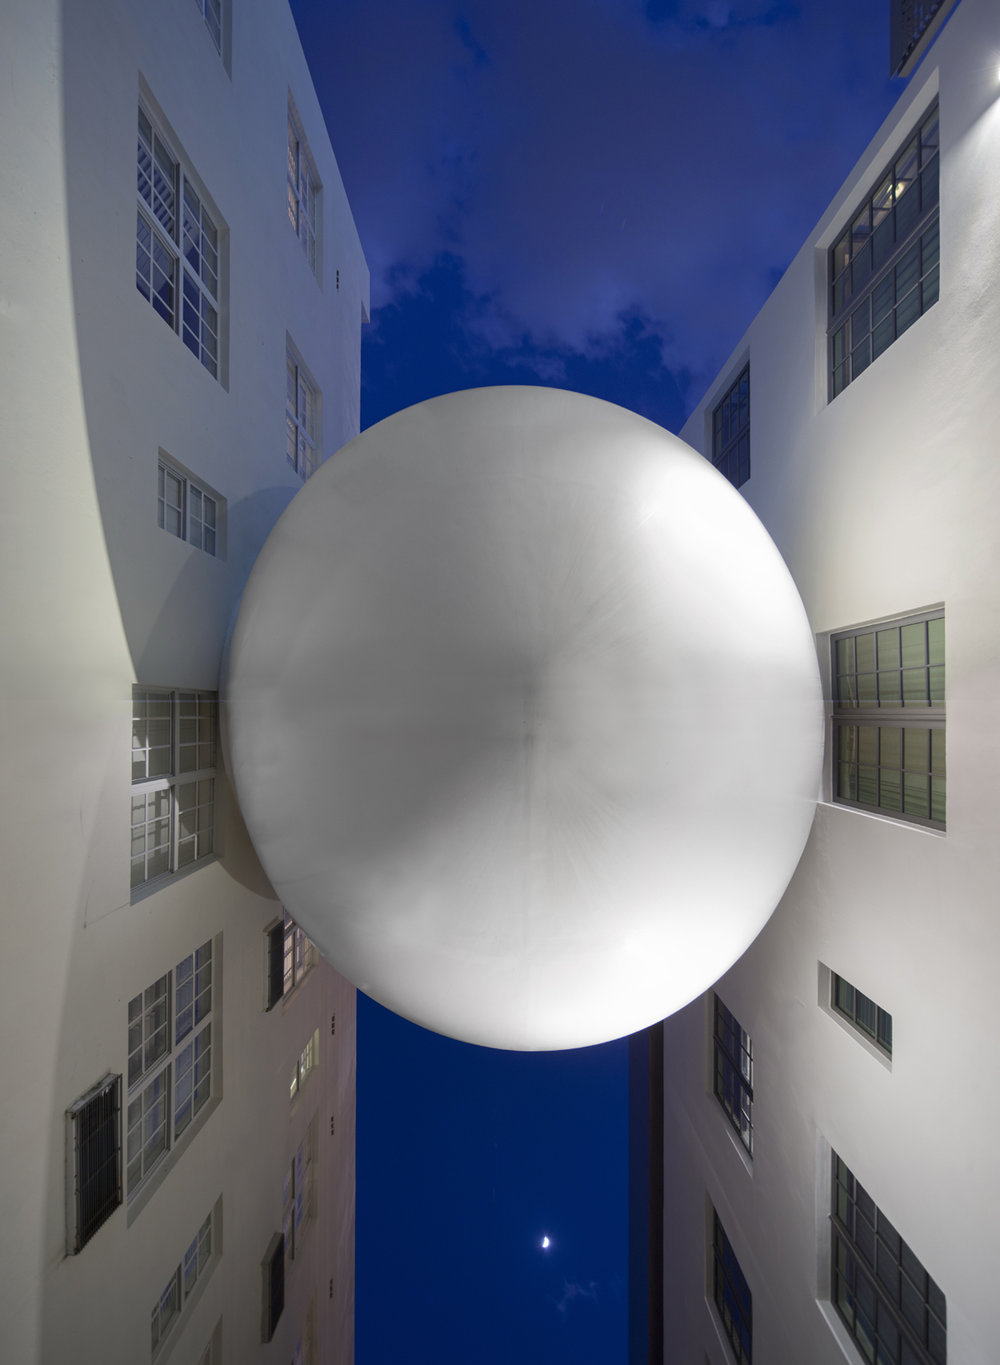 The Orb at the Betsy-Carlton Hotel by Shulman + Associates. Photo (c) Robin Hill